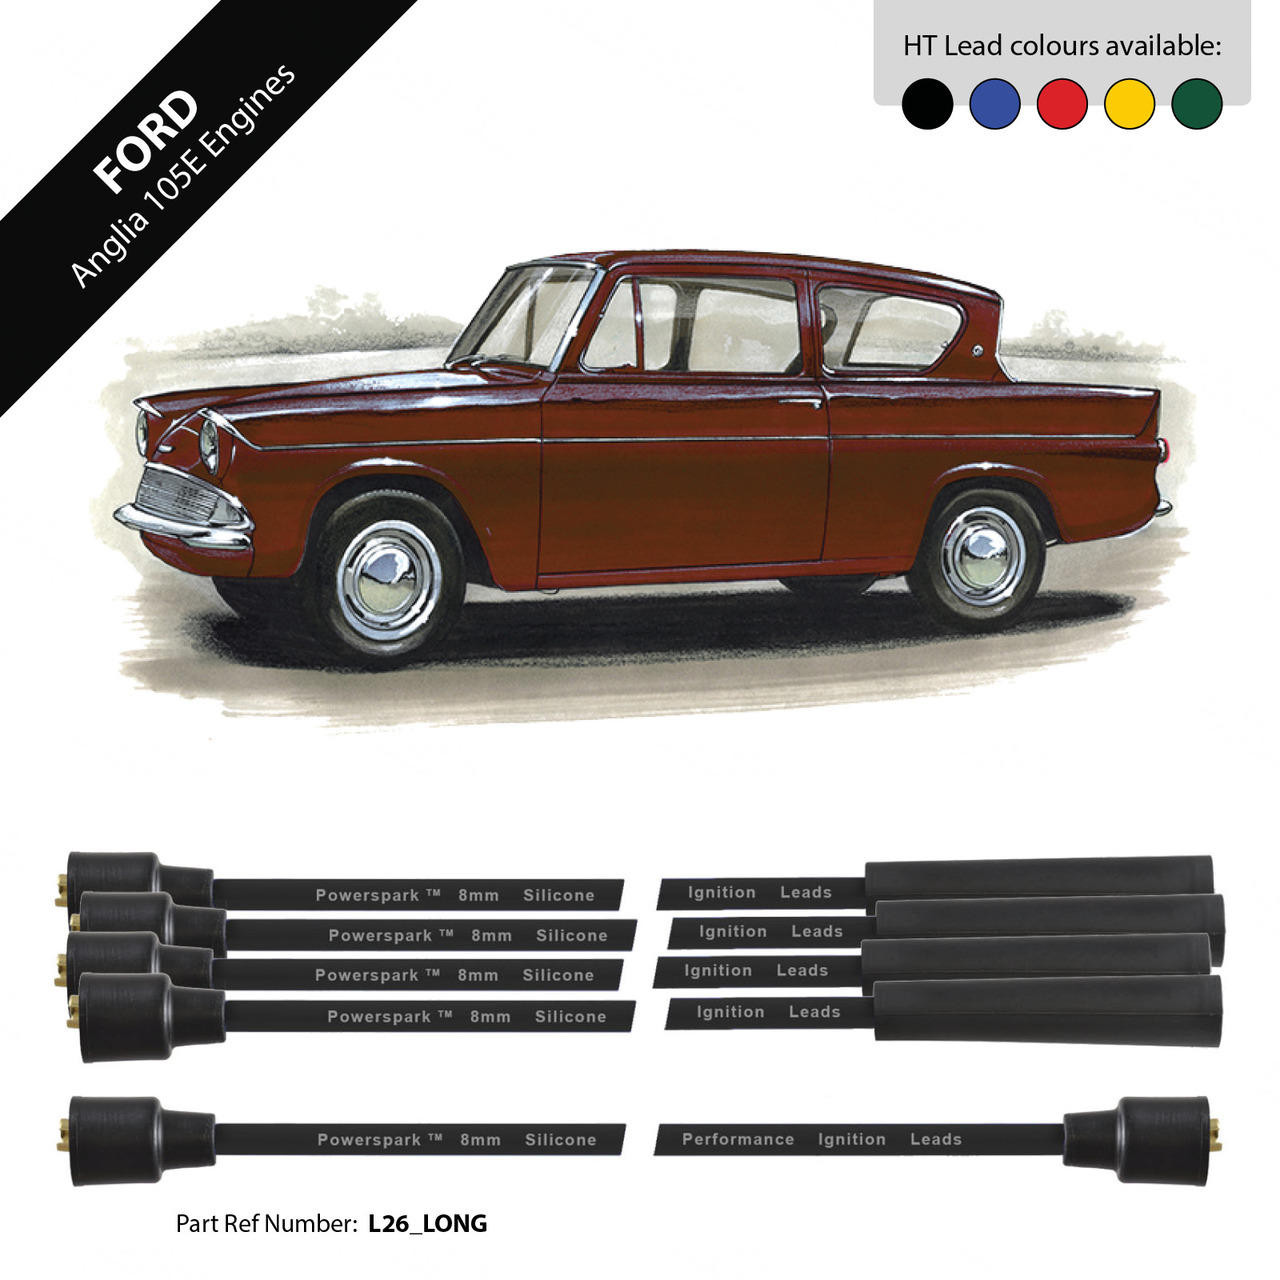 Powerspark Ford Anglia 105e HT Leads 8mm Double Silicone